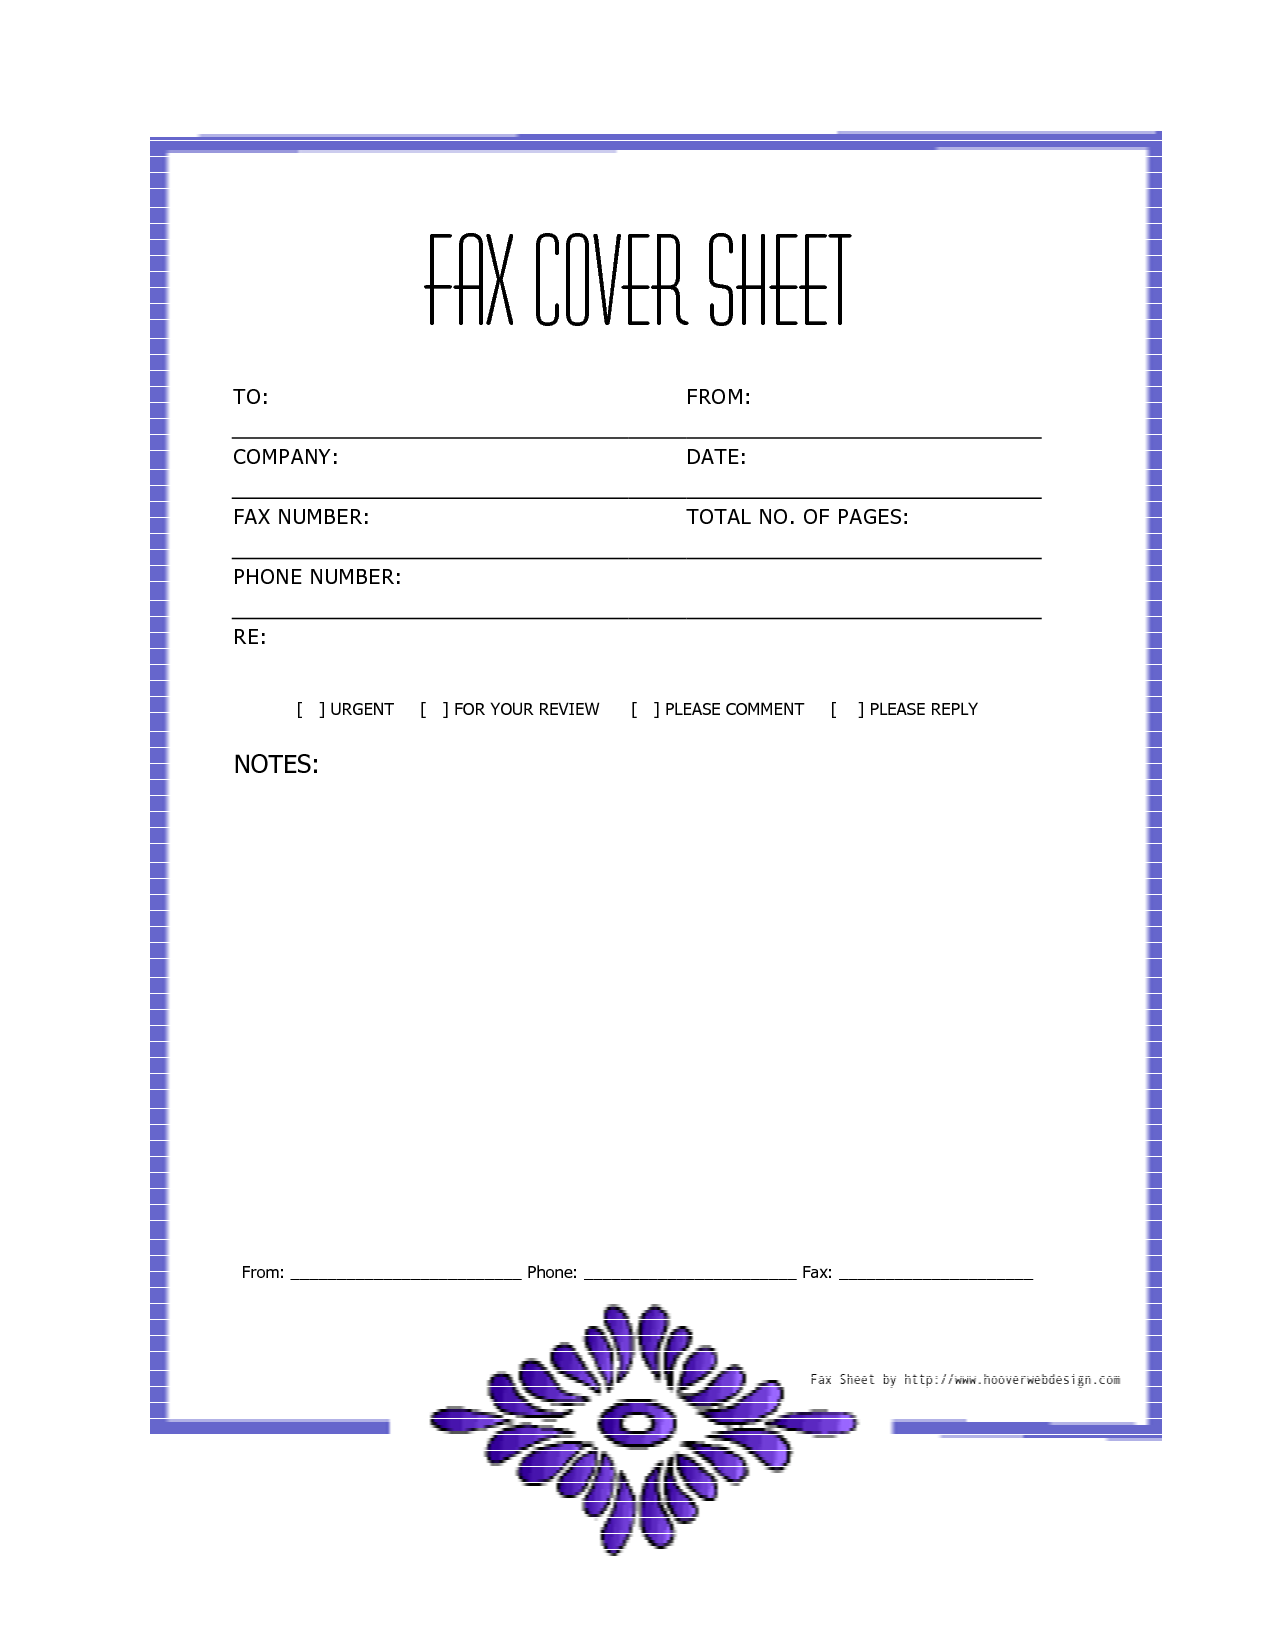 Free Downloads Fax Covers Sheets | Free Printable Fax Cover Sheet Template  Elegant   Download As  Fax Cover Sheet Free